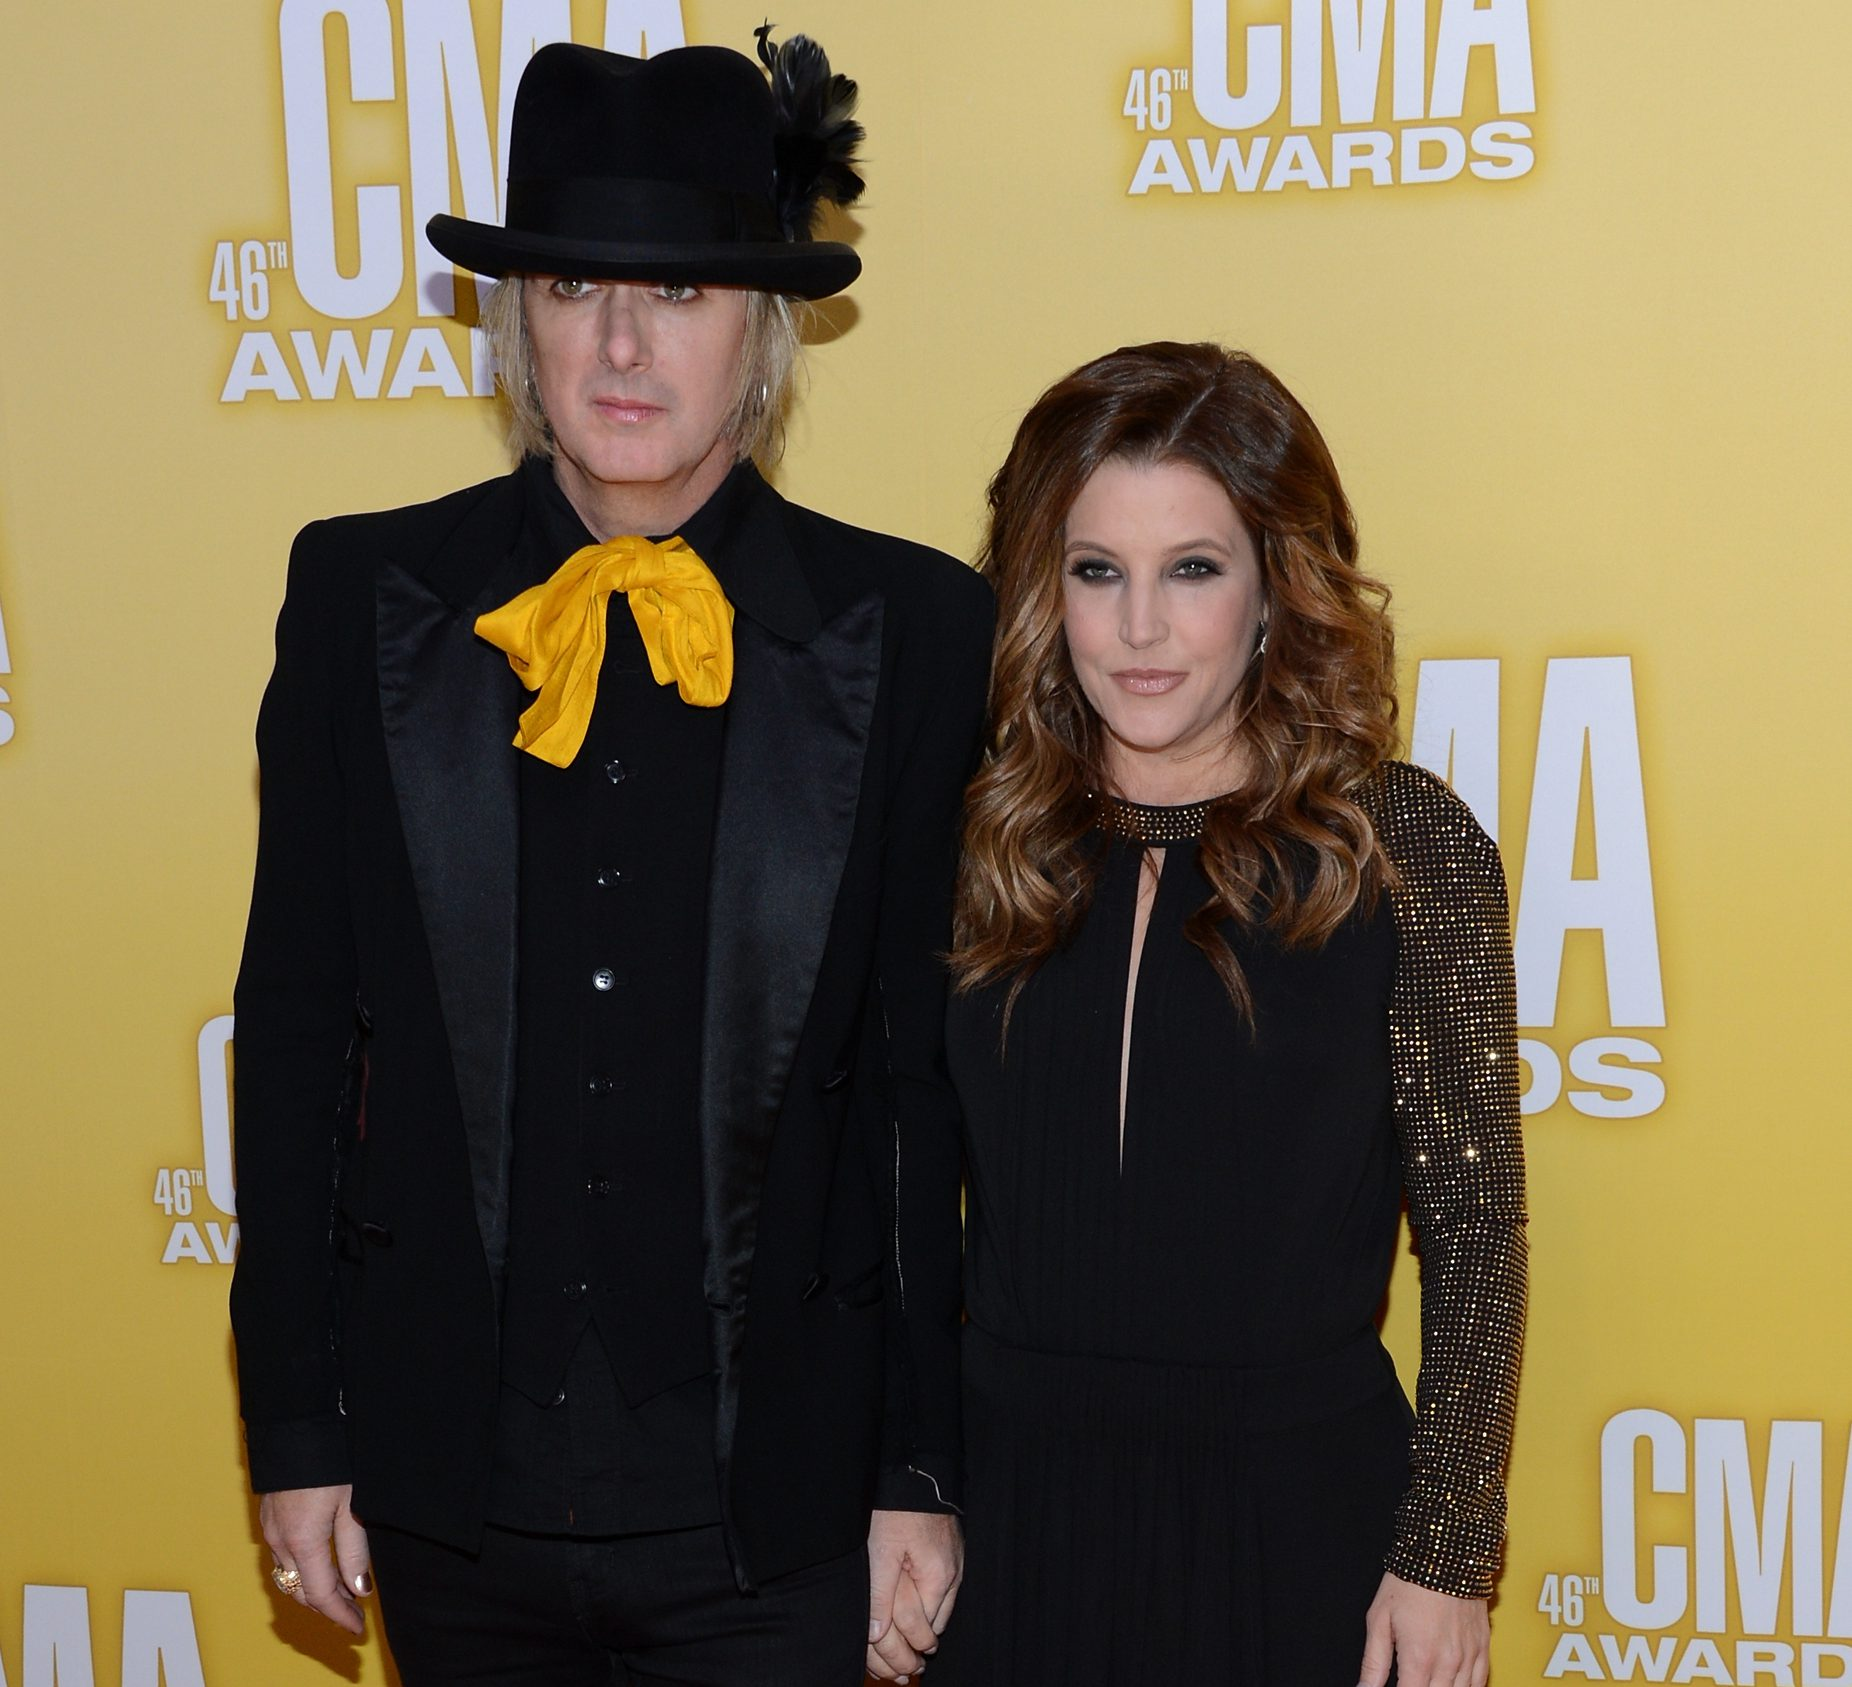 NASHVILLE, TN - NOVEMBER 01:  Lisa Marie Presley (R) and Michael Lockwood attend the 46th annual CMA Awards at the Bridgestone Arena on November 1, 2012 in Nashville, Tennessee.  (Photo by Jason Kempin/Getty Images)